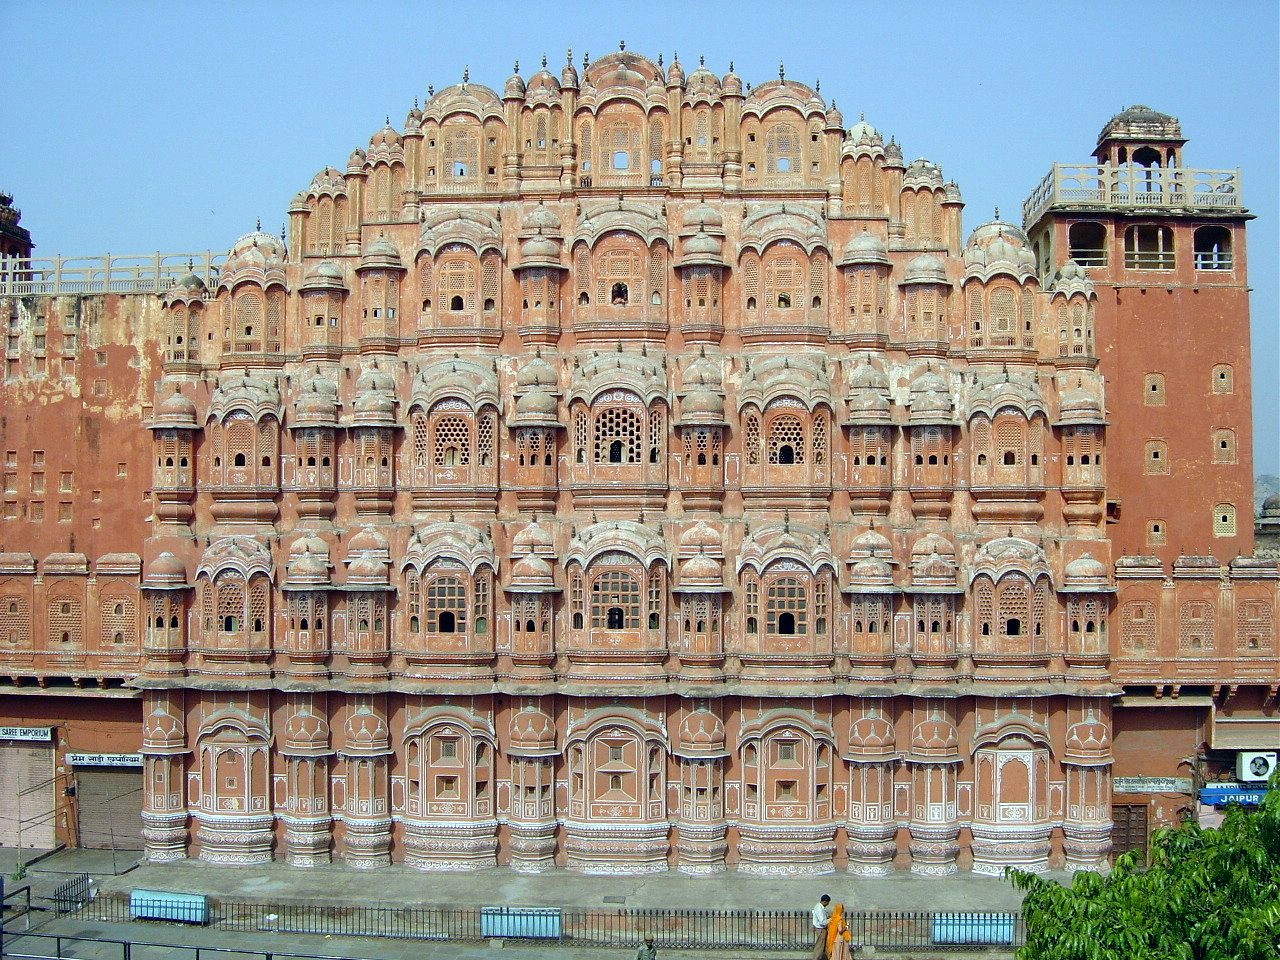 hawa mahal Hawa mahal in jaipur - jaipur - rajasthan: photos of jaipur - explore pictures & images of jaipur also find out photos of famous places, attractions, events.